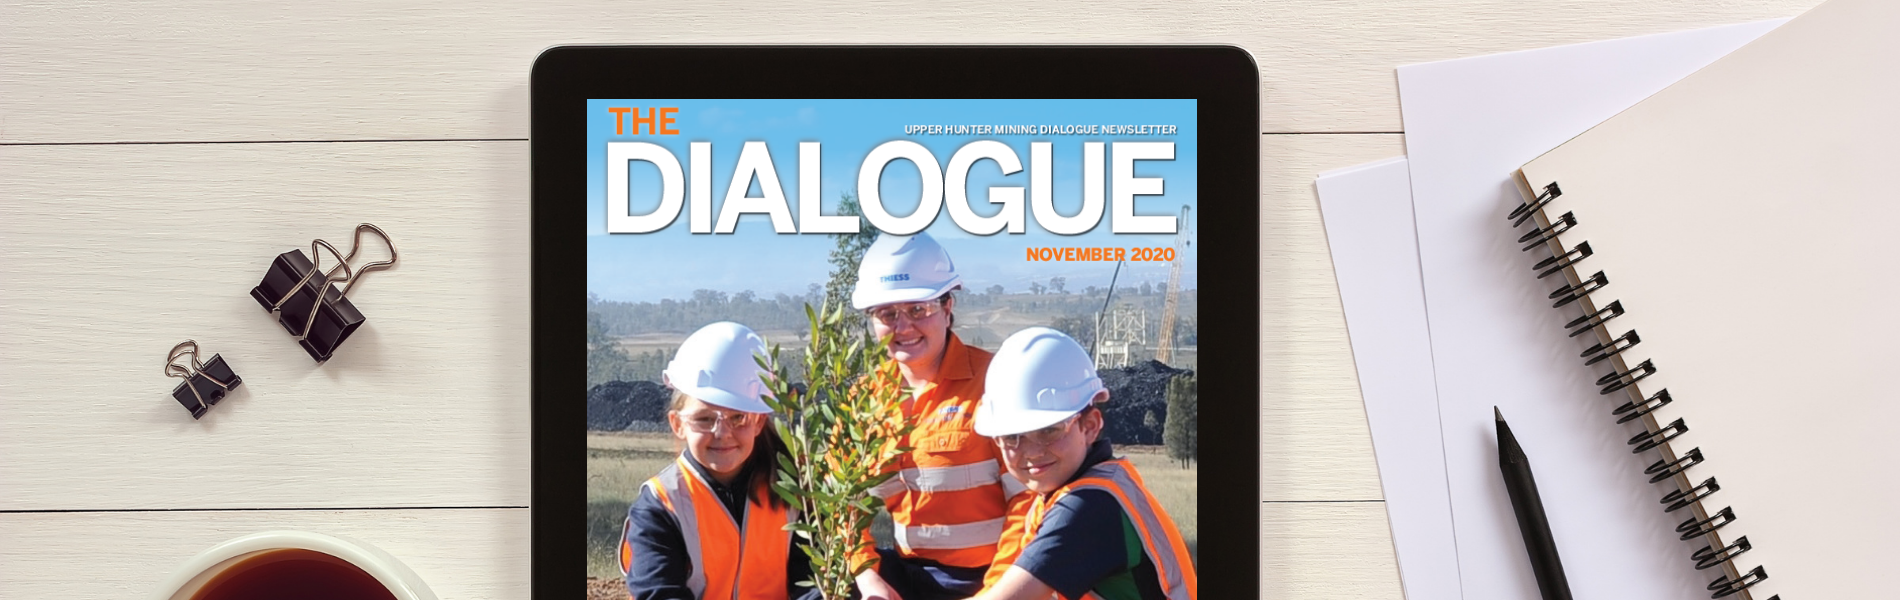 Catch up on all 'The Dialogue' latest with the November 2020 newsletter